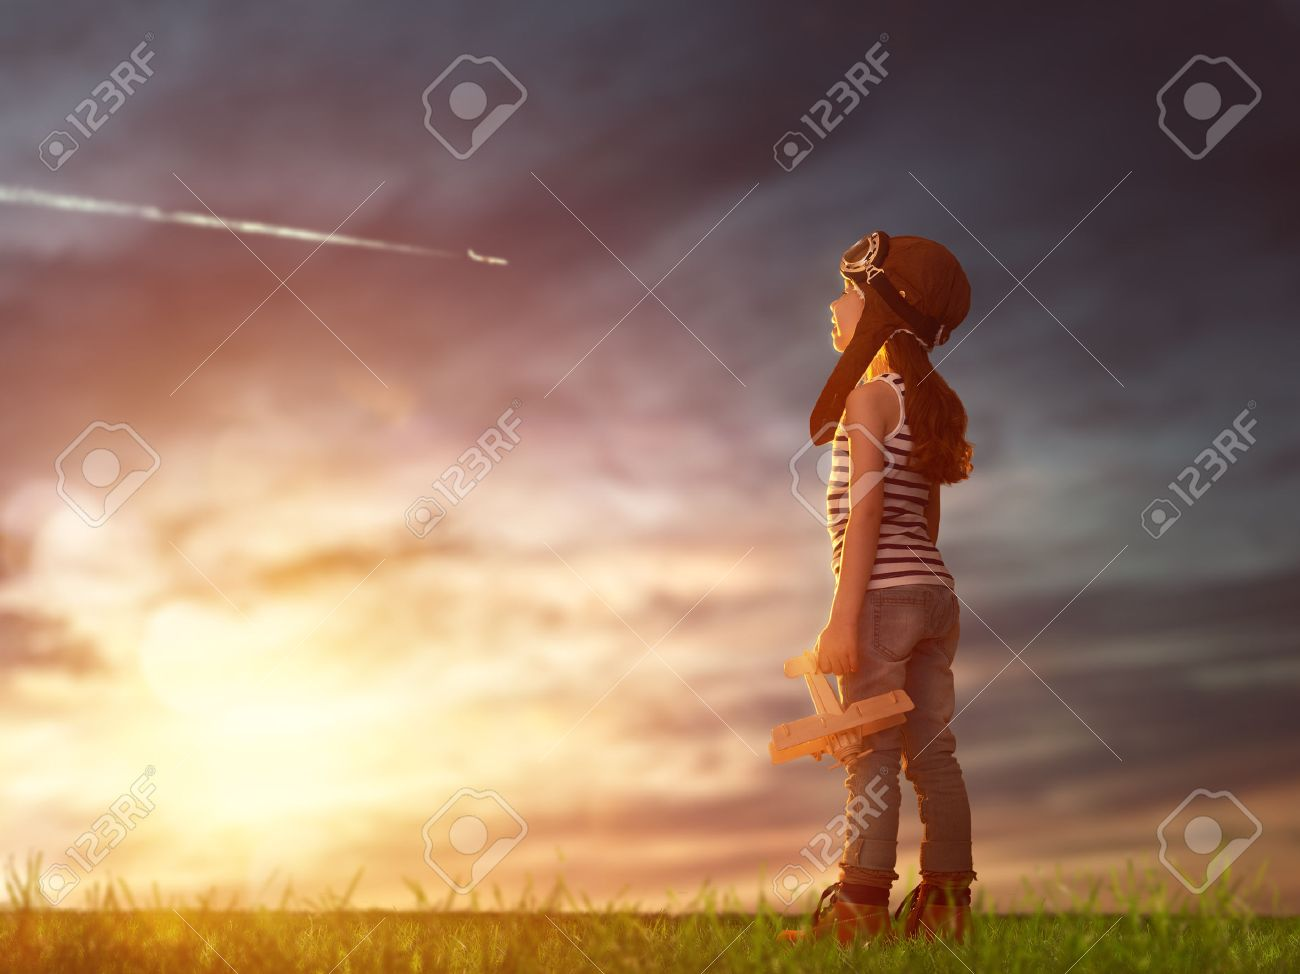 dreams of flight! child playing with toy airplane against the sky at sunset - 50427811